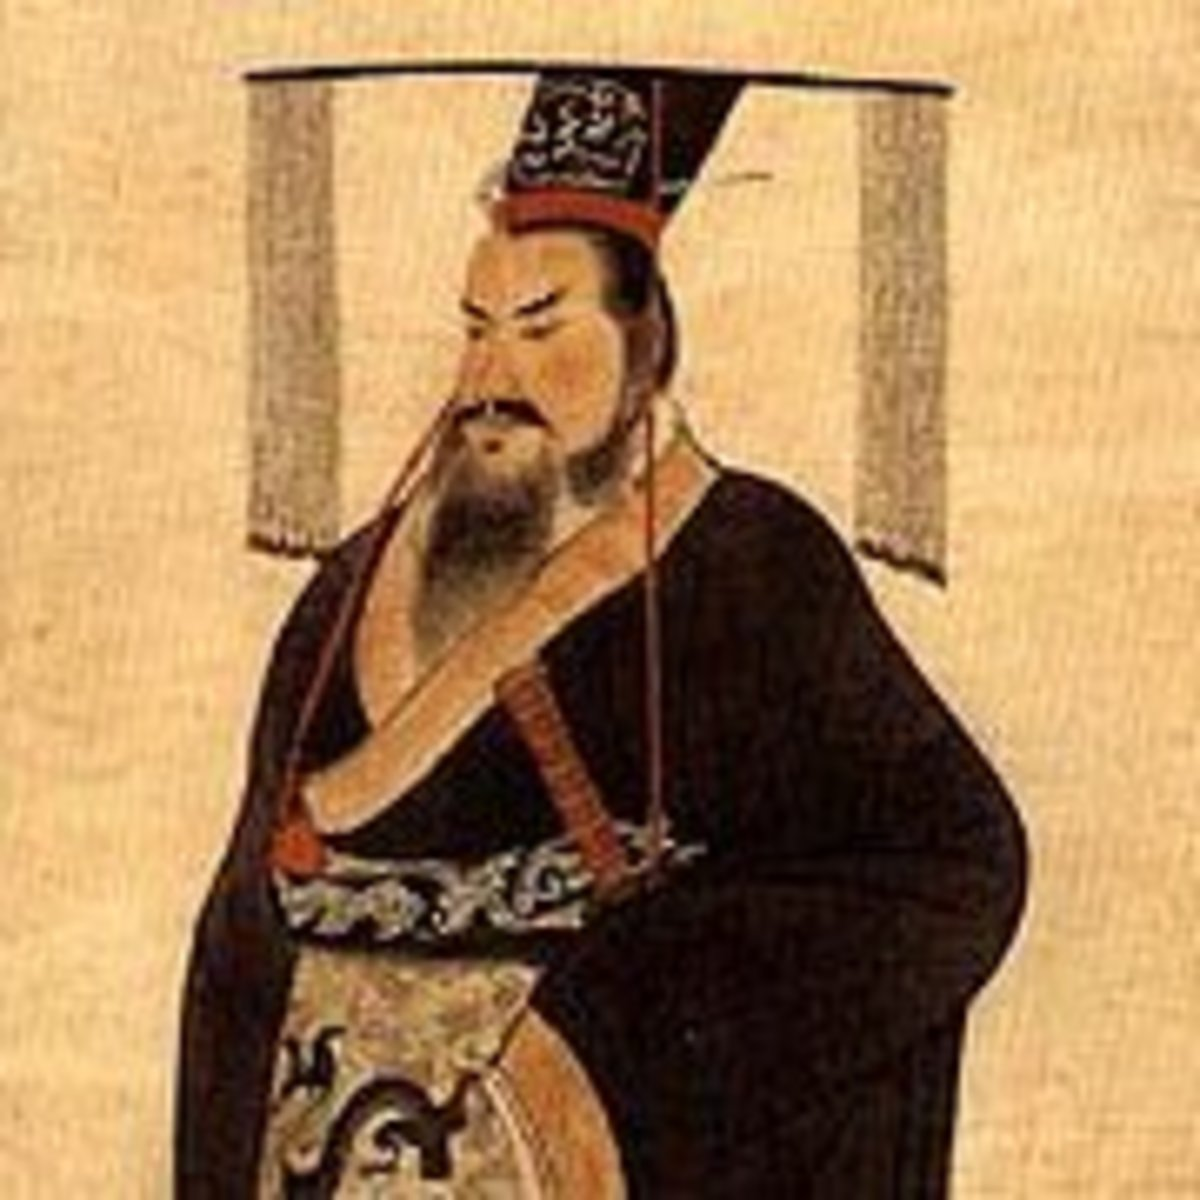 Qin Shi Huang, First Emperor of China